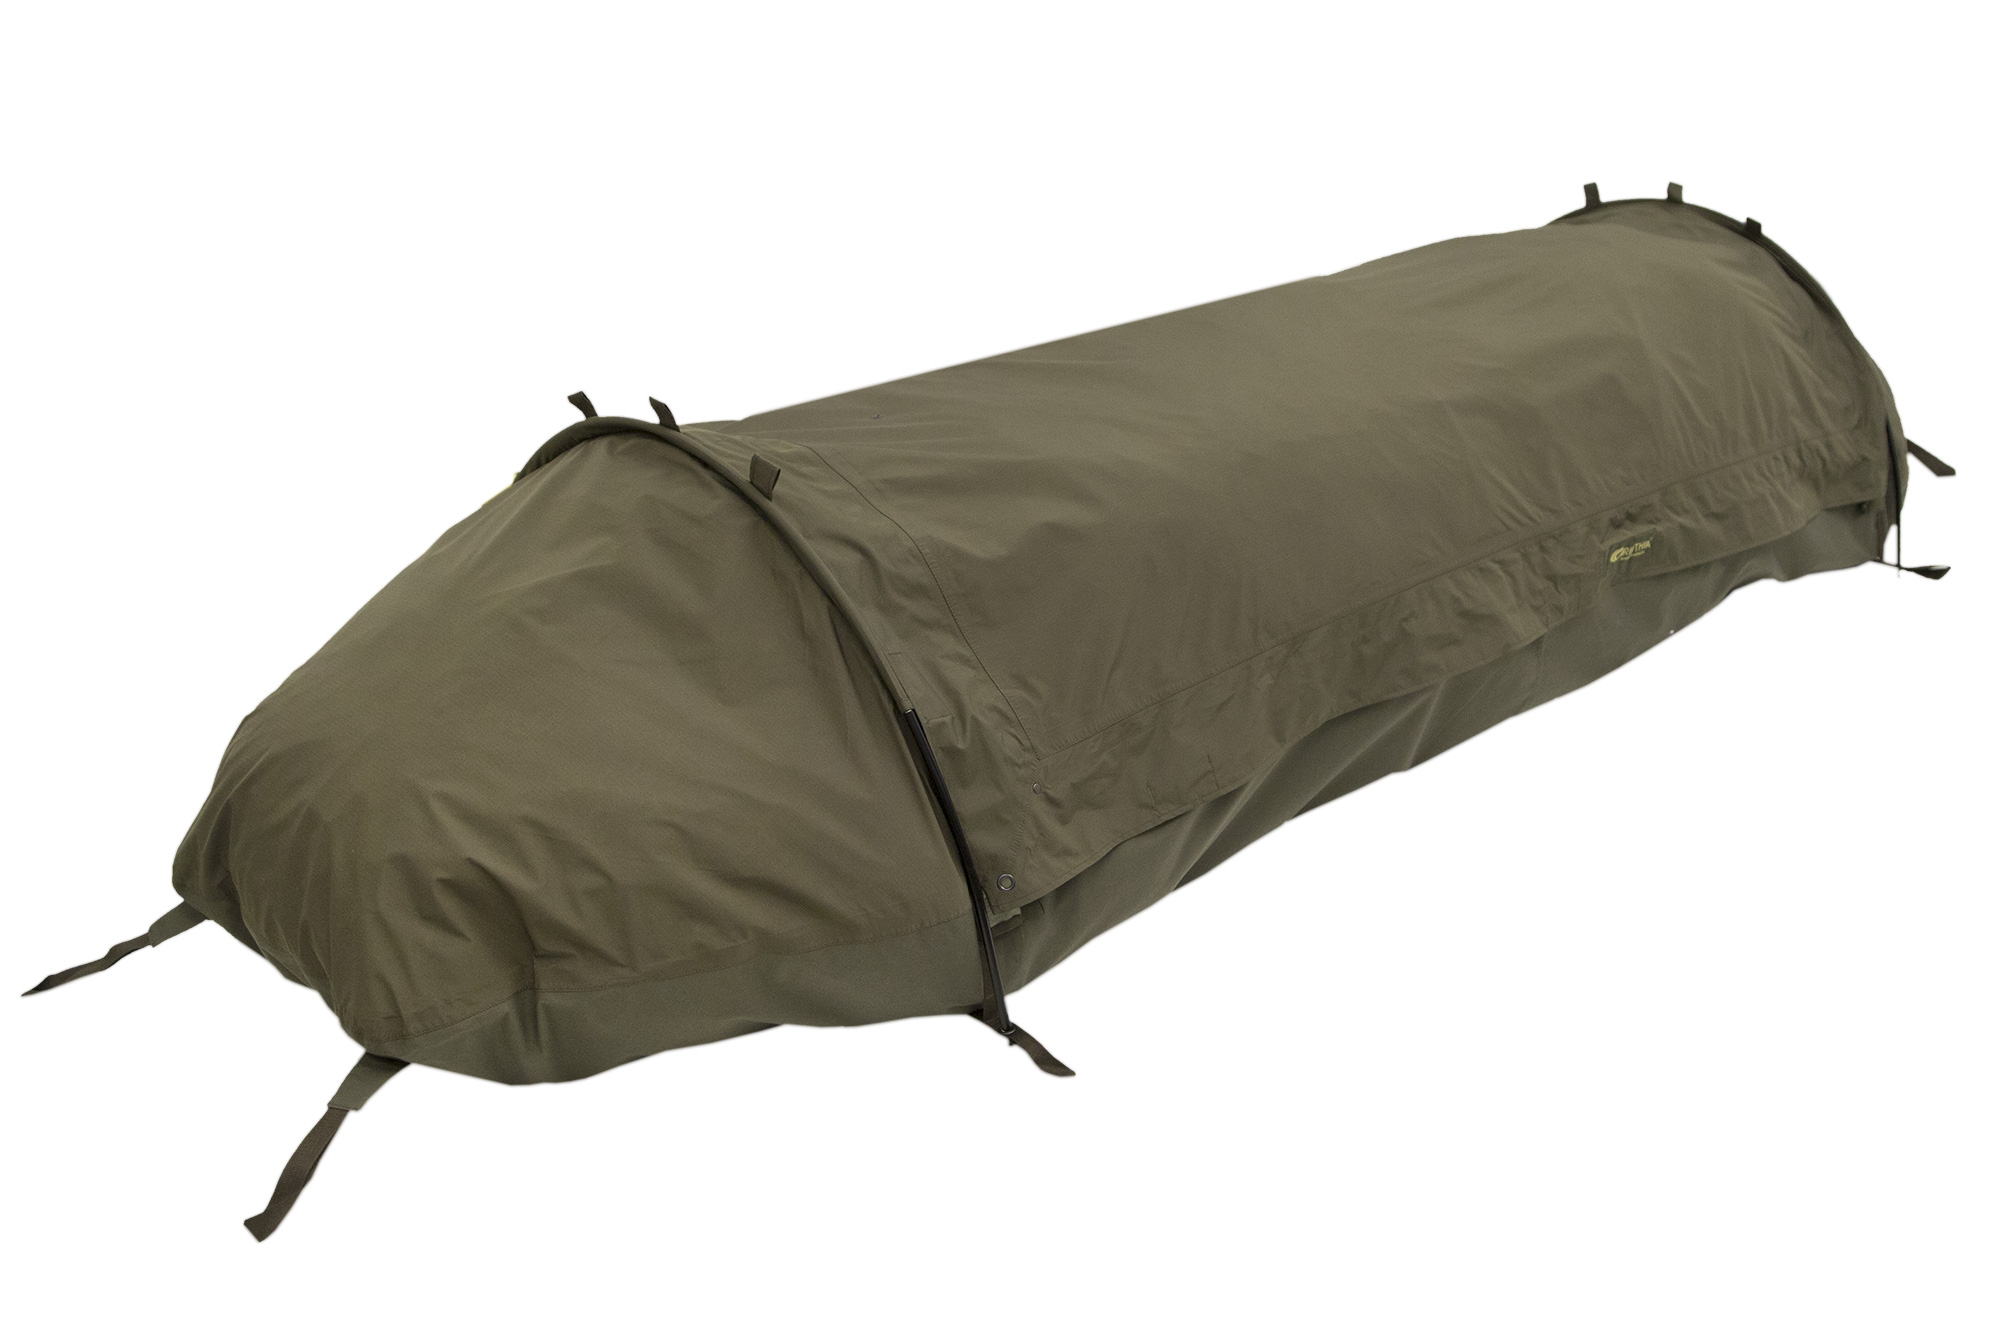 Micro Tent Plus Carinthia Military Sleeping Systems